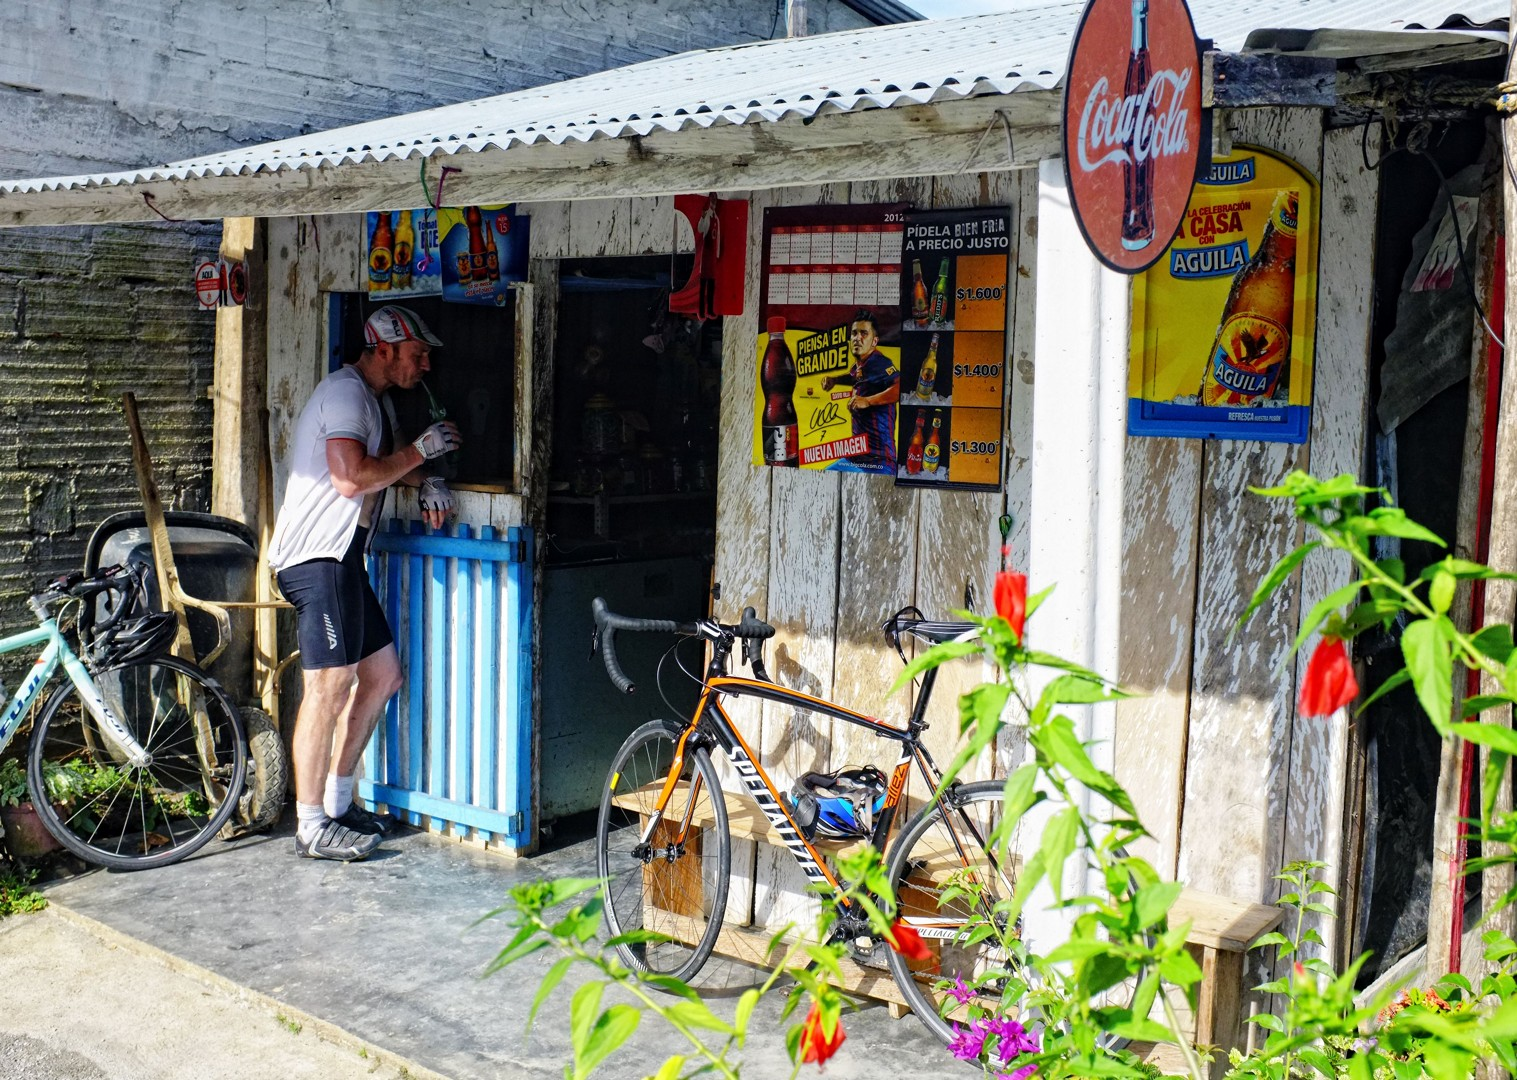 colombia-road-cycling-holiday-skedaddle.jpg - Colombia - Tres Cordilleras - Guided Road Cycling Holiday - Road Cycling